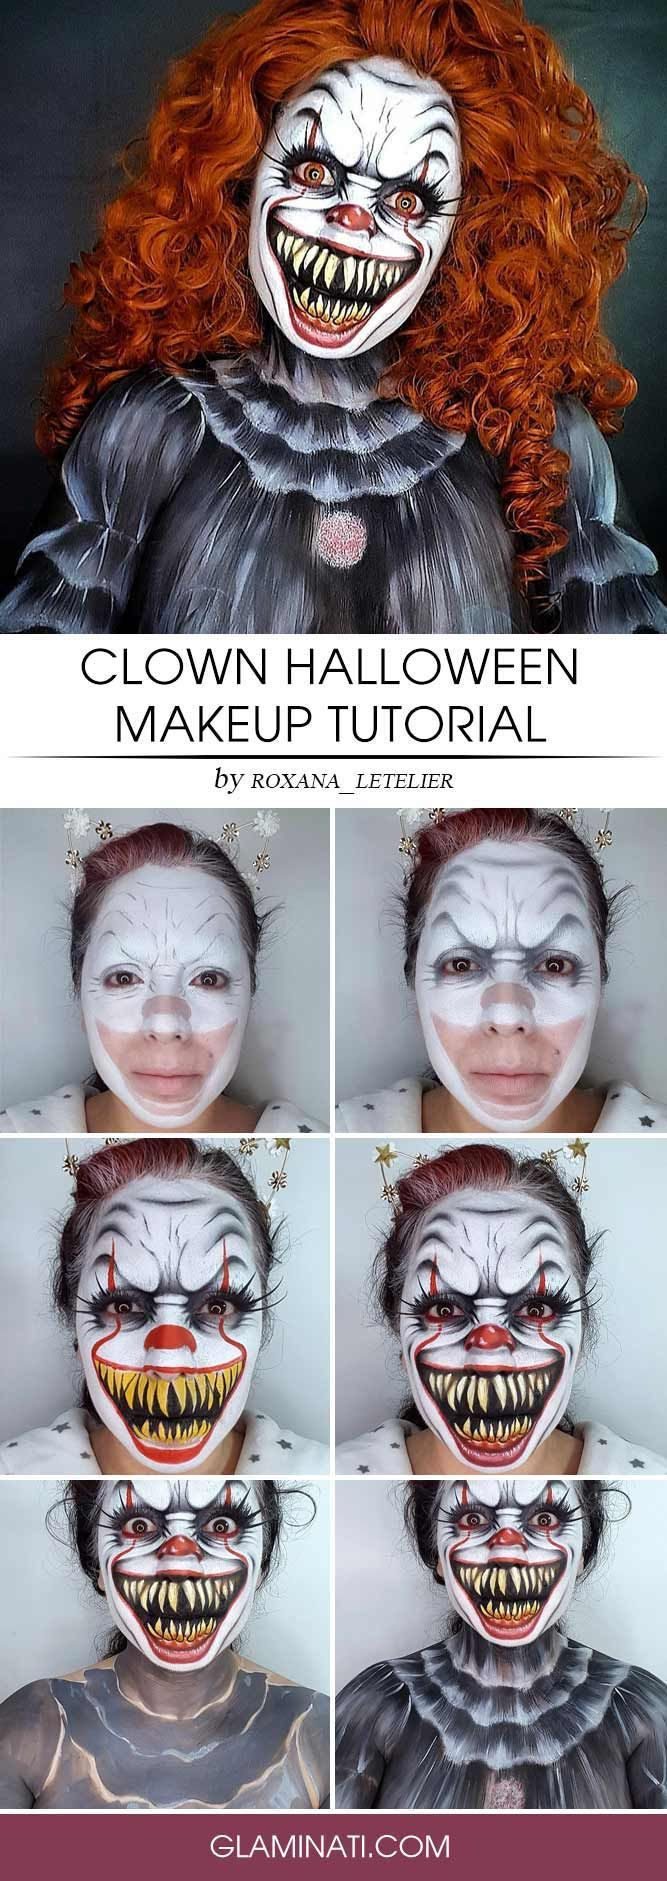 37 Horribly Exciting Scary Halloween Makeup Ideas Scary